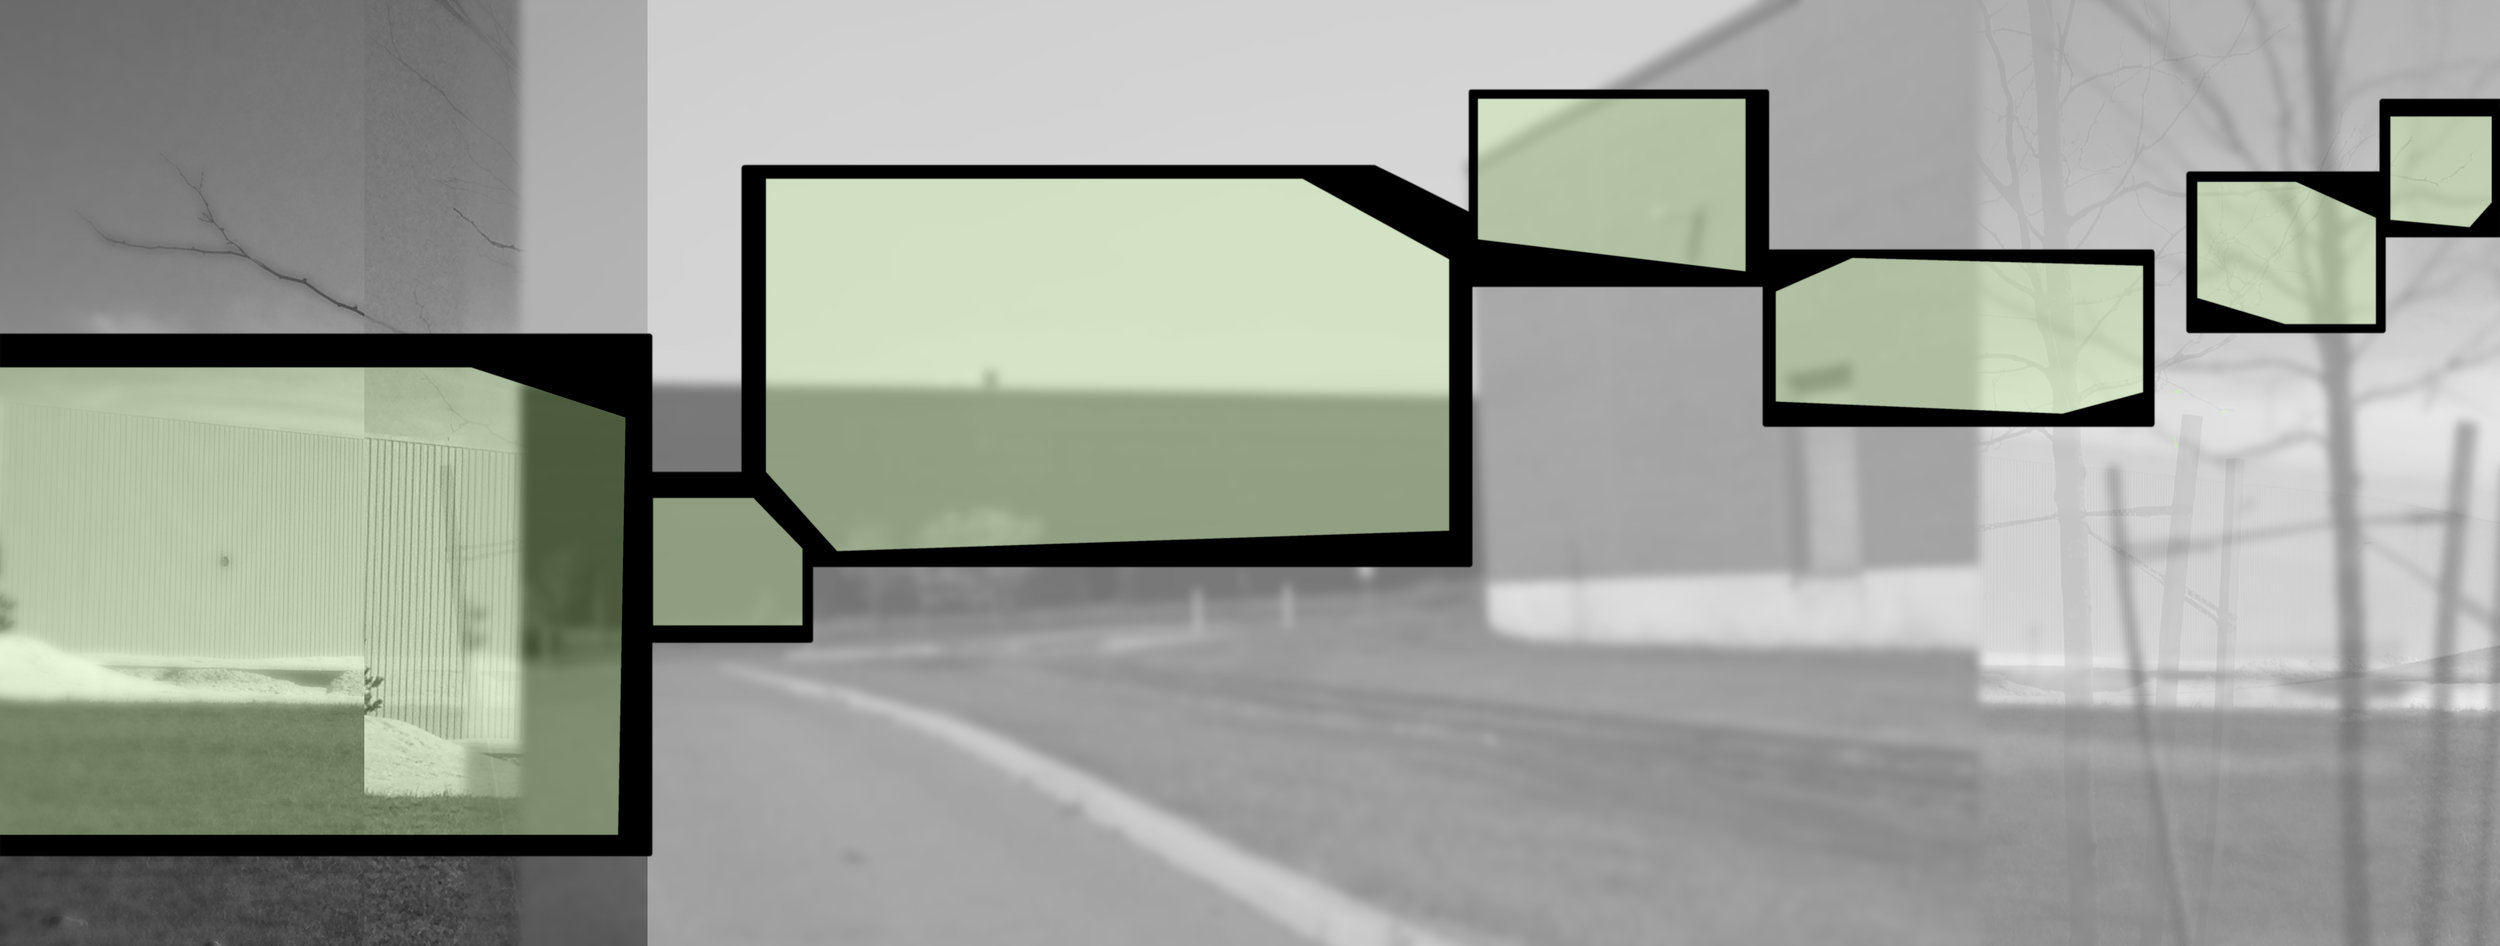 Mobility of Frames P1 | 2017 | archival pigment print | 12 x 35 inches